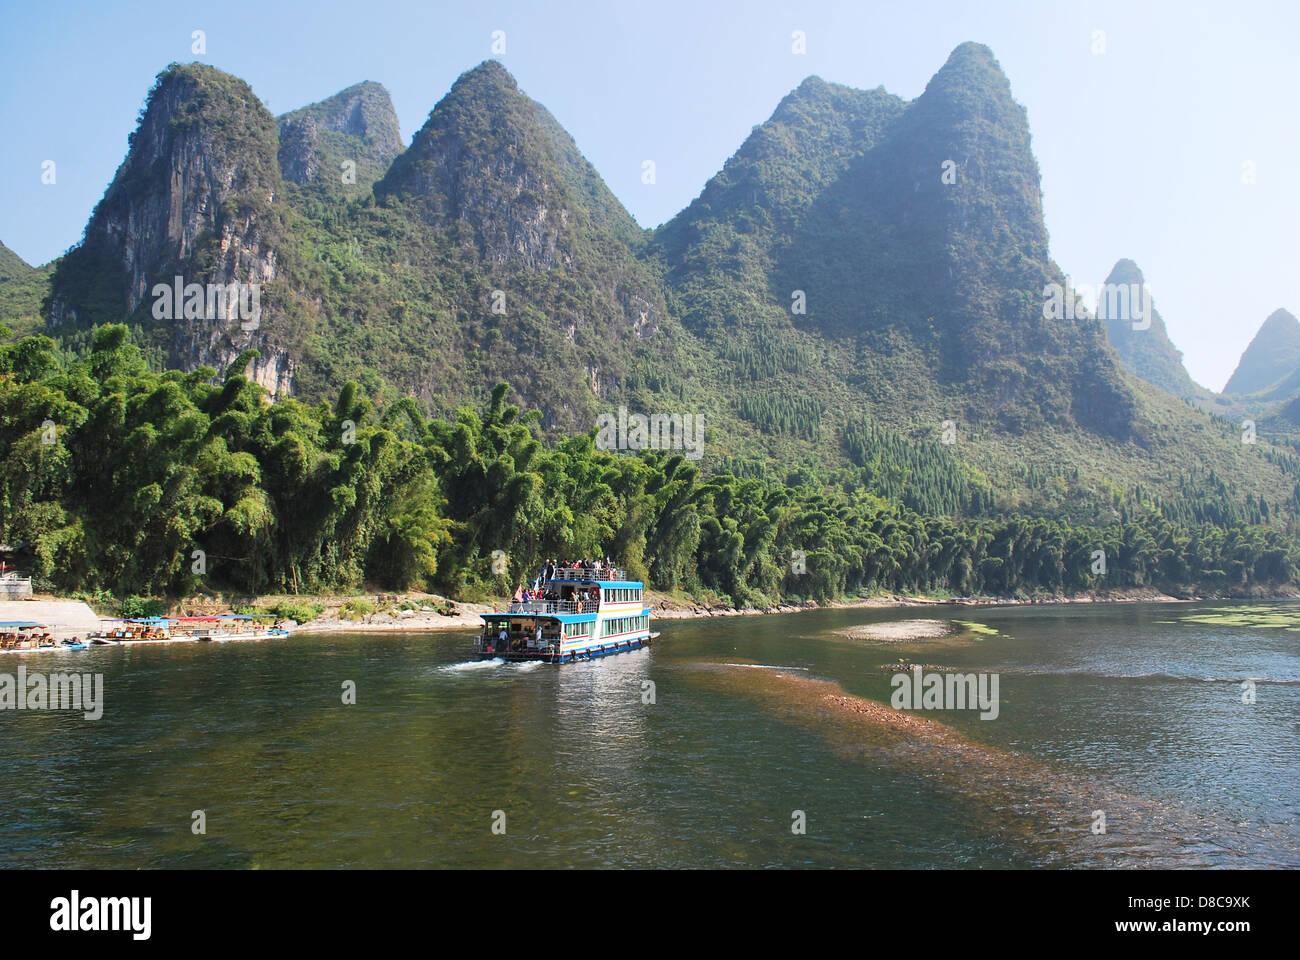 Li River, Southern China from Guilin to Yangshuo Stock Photo